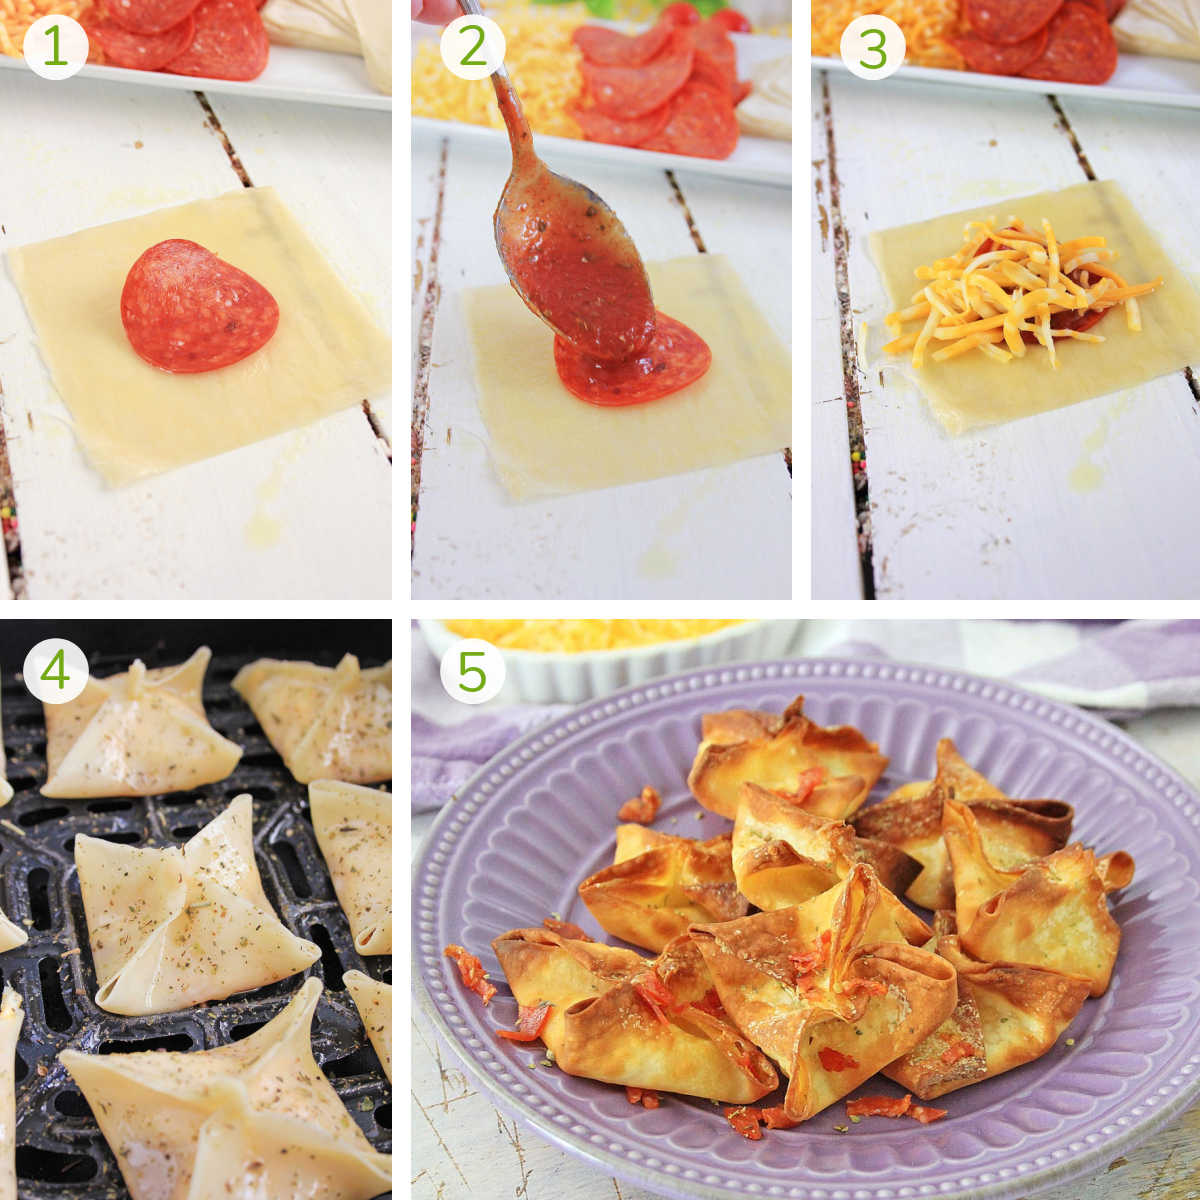 process photos showing adding the pepperoni, sauce, cheese to the wonton, folding it and air frying until crispy.